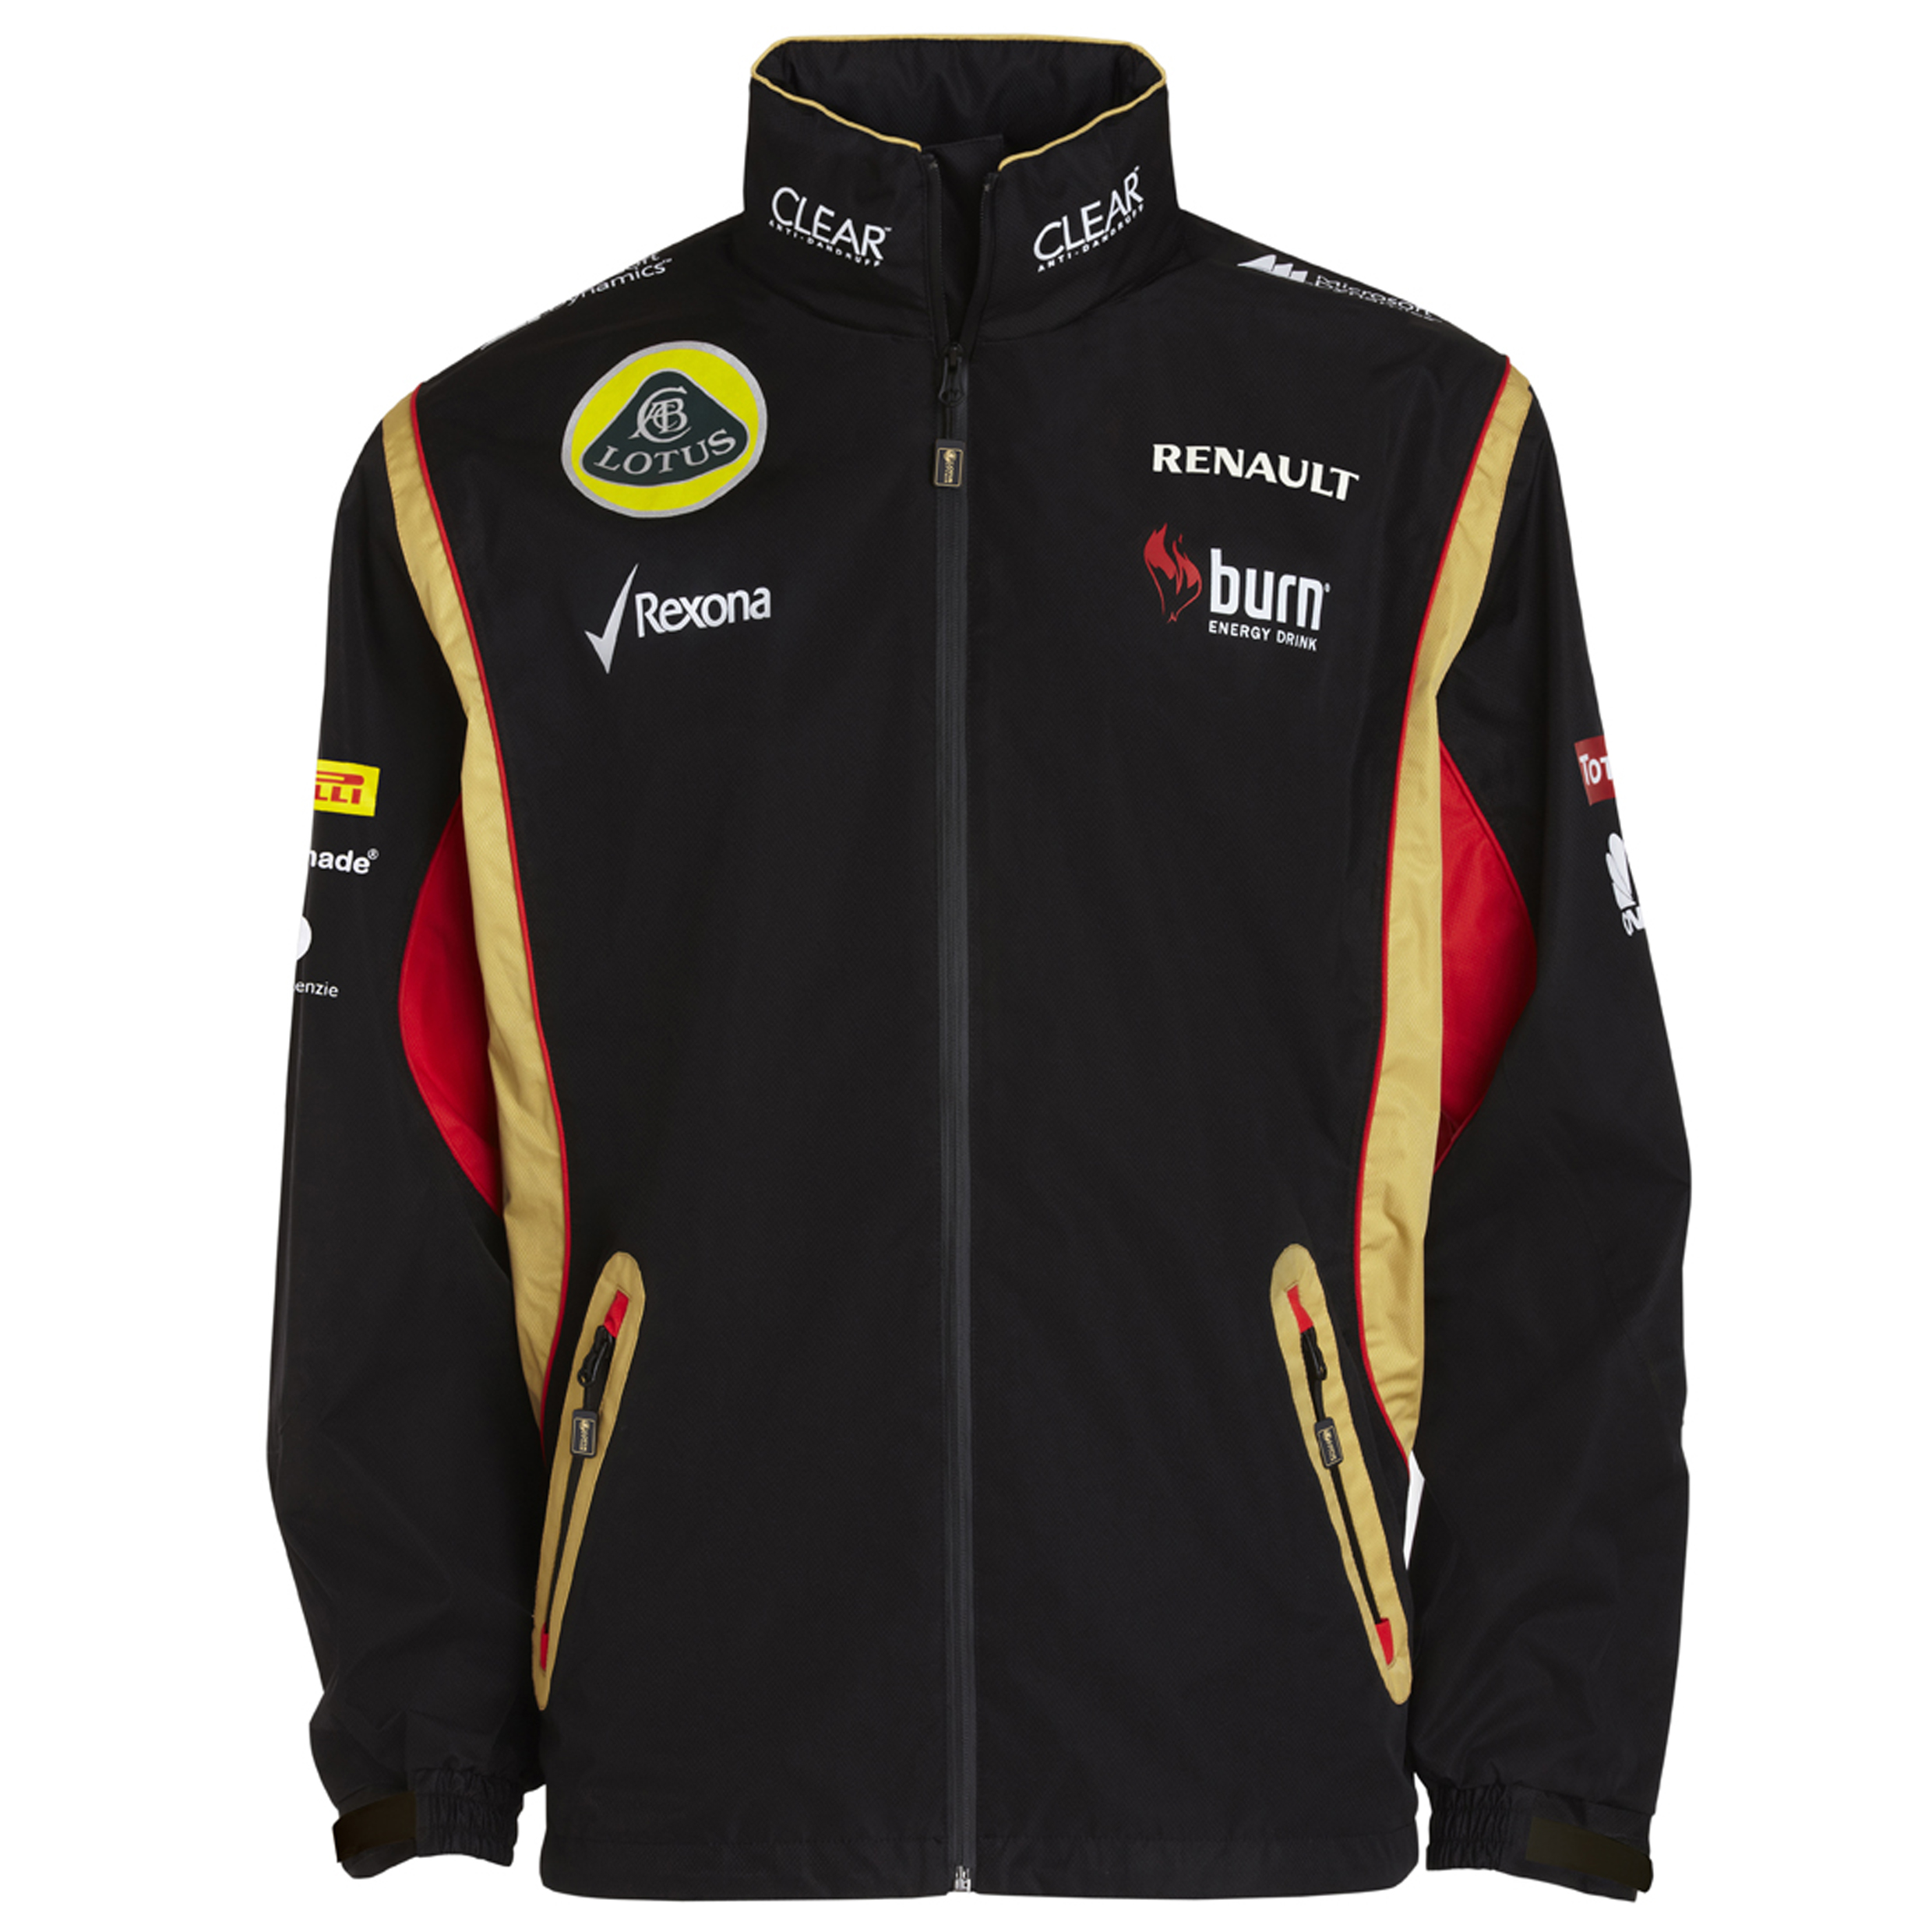 Lotus F1 Team 2013 F1 Unisex Replica Rain Jacket